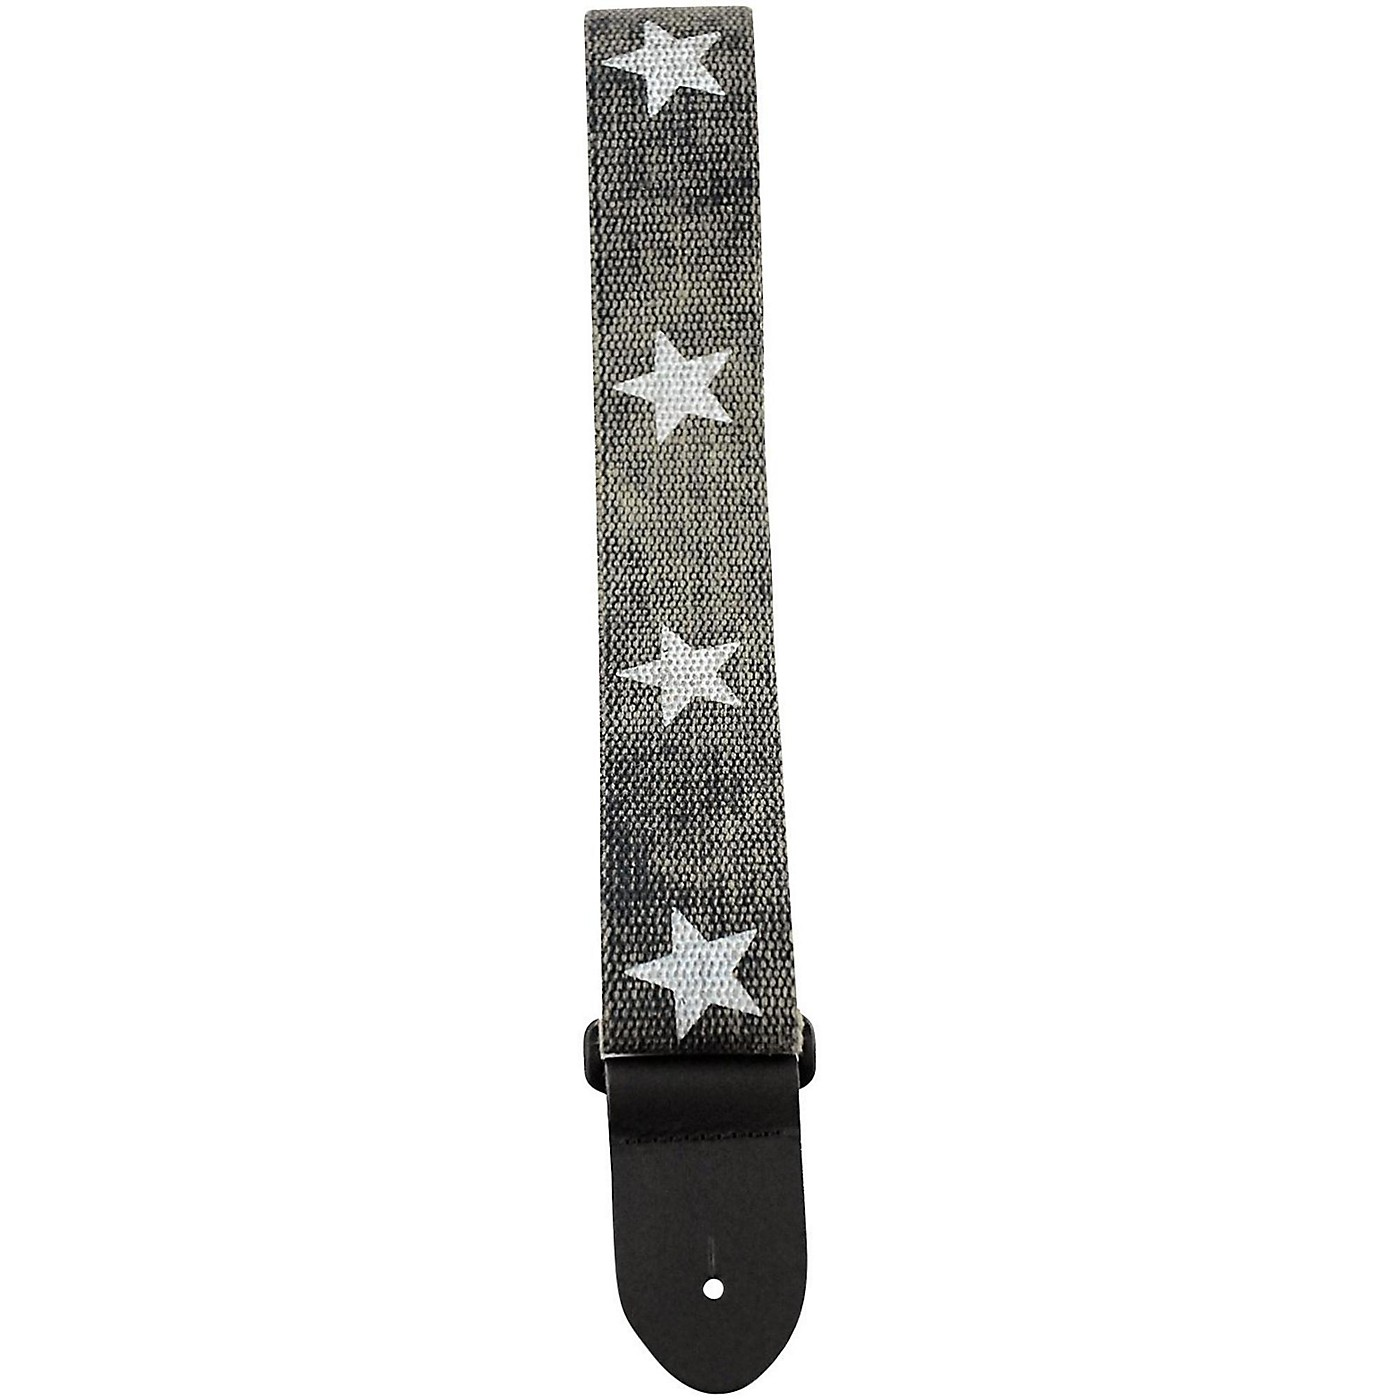 Perri's 2 in. Cotton Guitar Strap with Leather Ends thumbnail